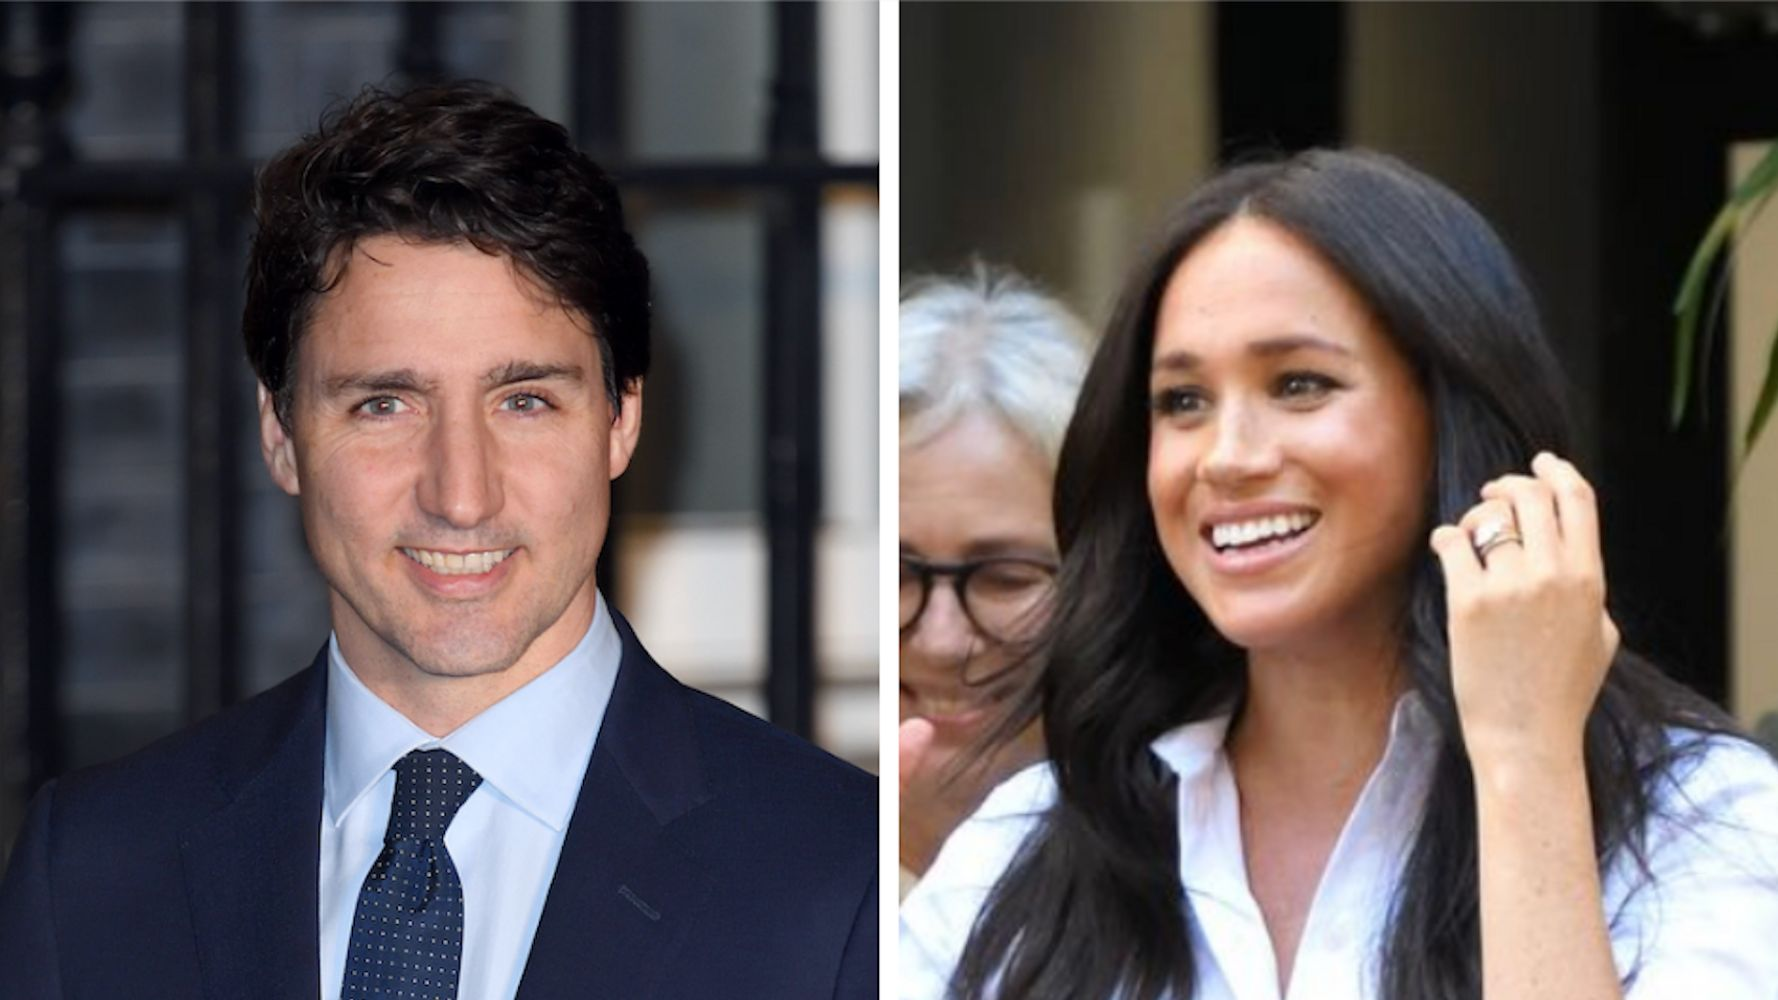 Justin Trudeau Welcomes Meghan, Harry And Archie To Canada With Simple Message